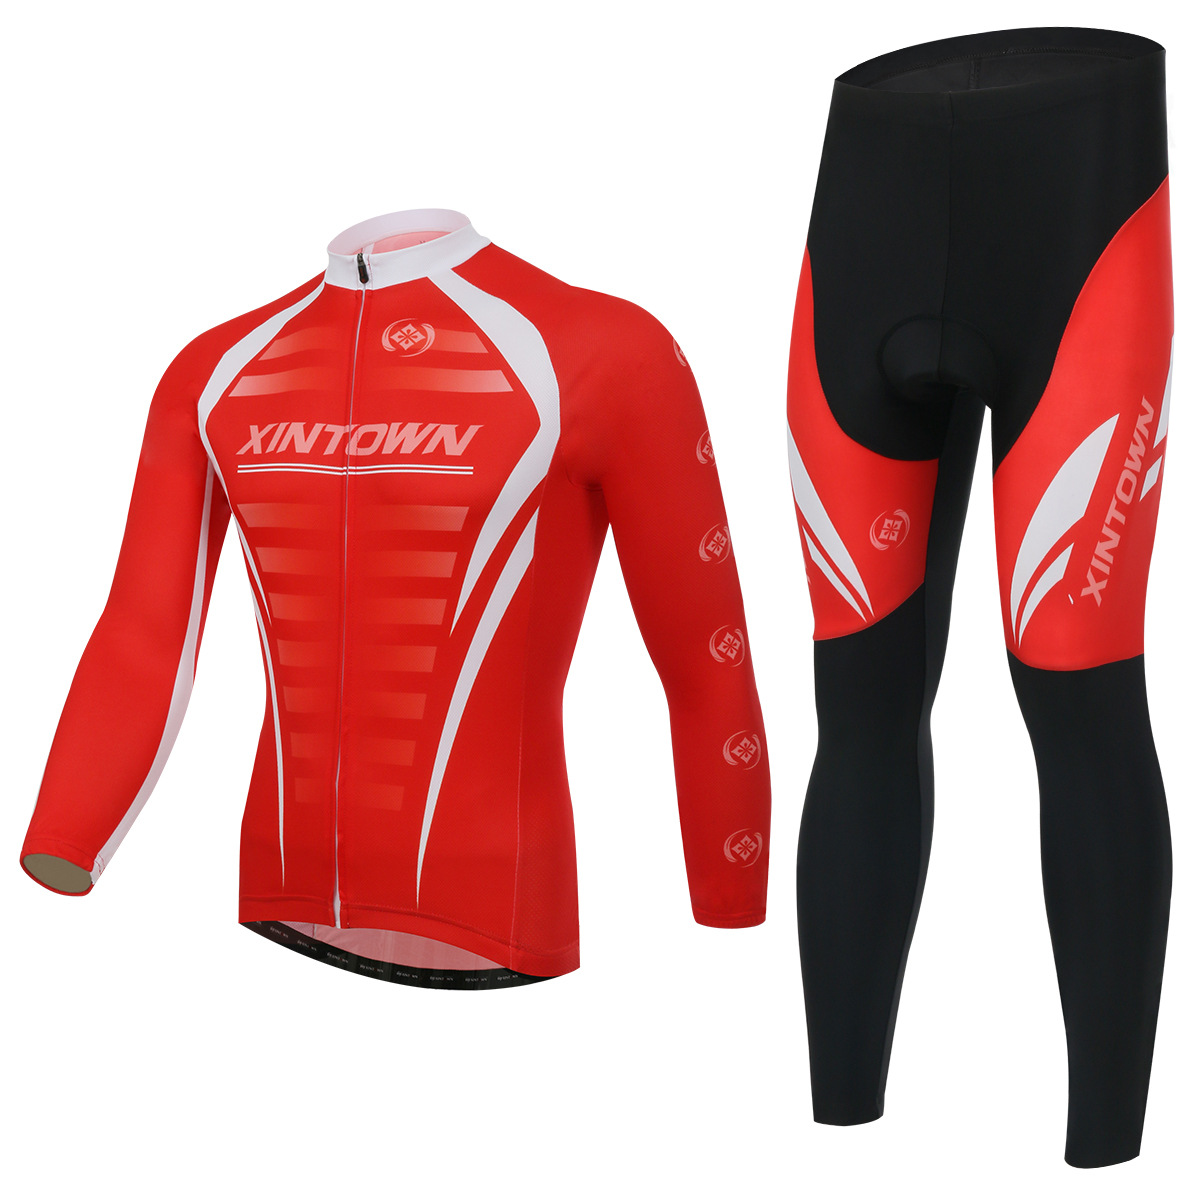 2018 New XINTOWN Cycling Jersey Blast Light Long Sleeve Clothes Bicycle Suits Spring Autumn Bike Riding Sportswear Breathable